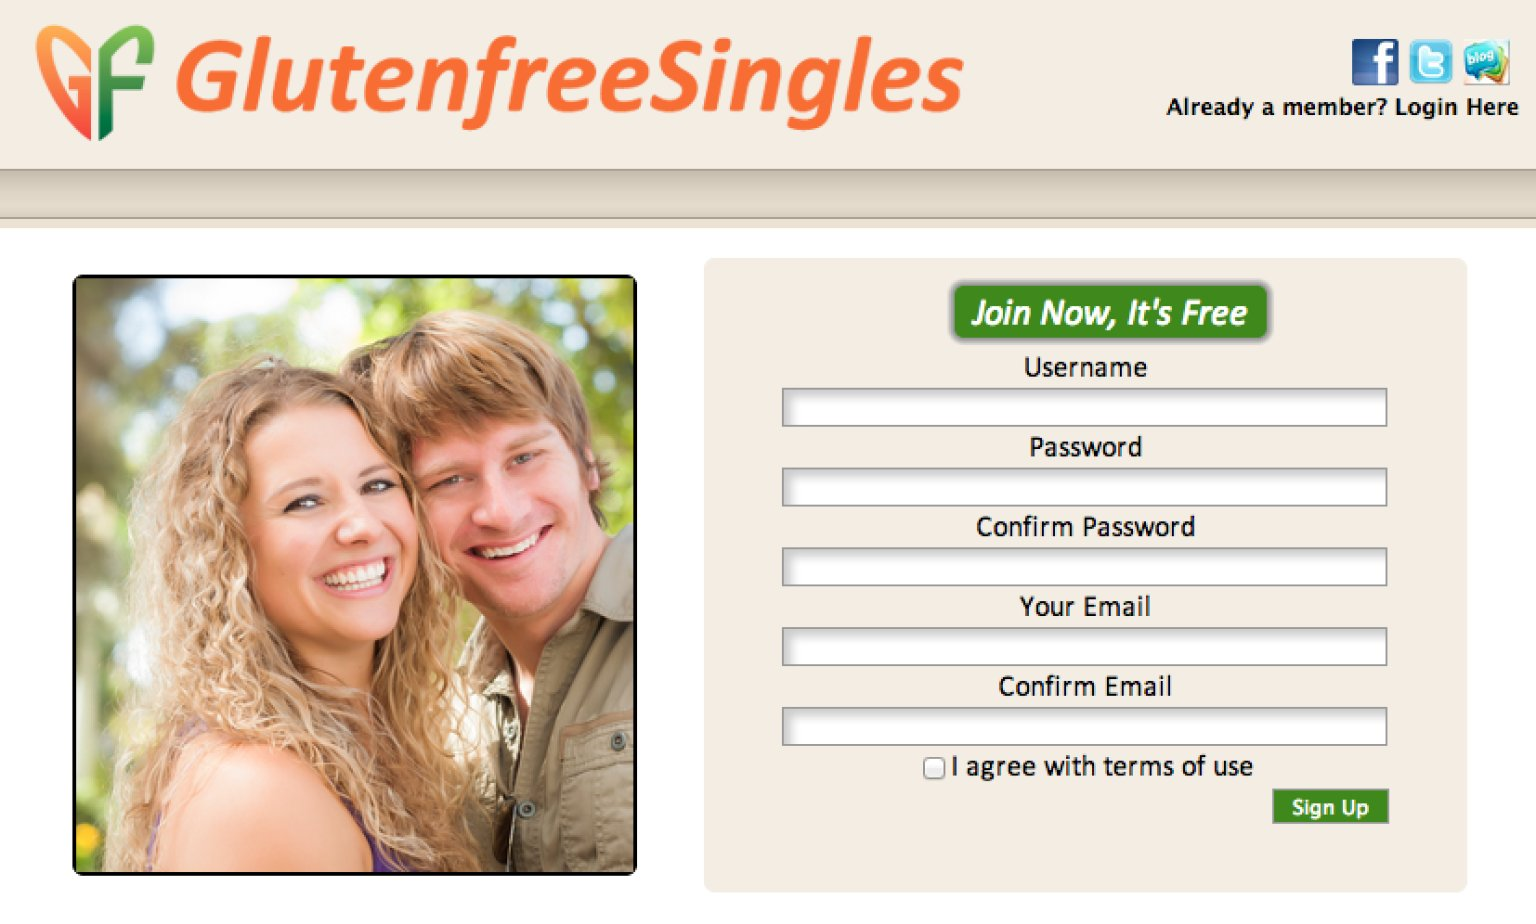 How to use a dating site for free